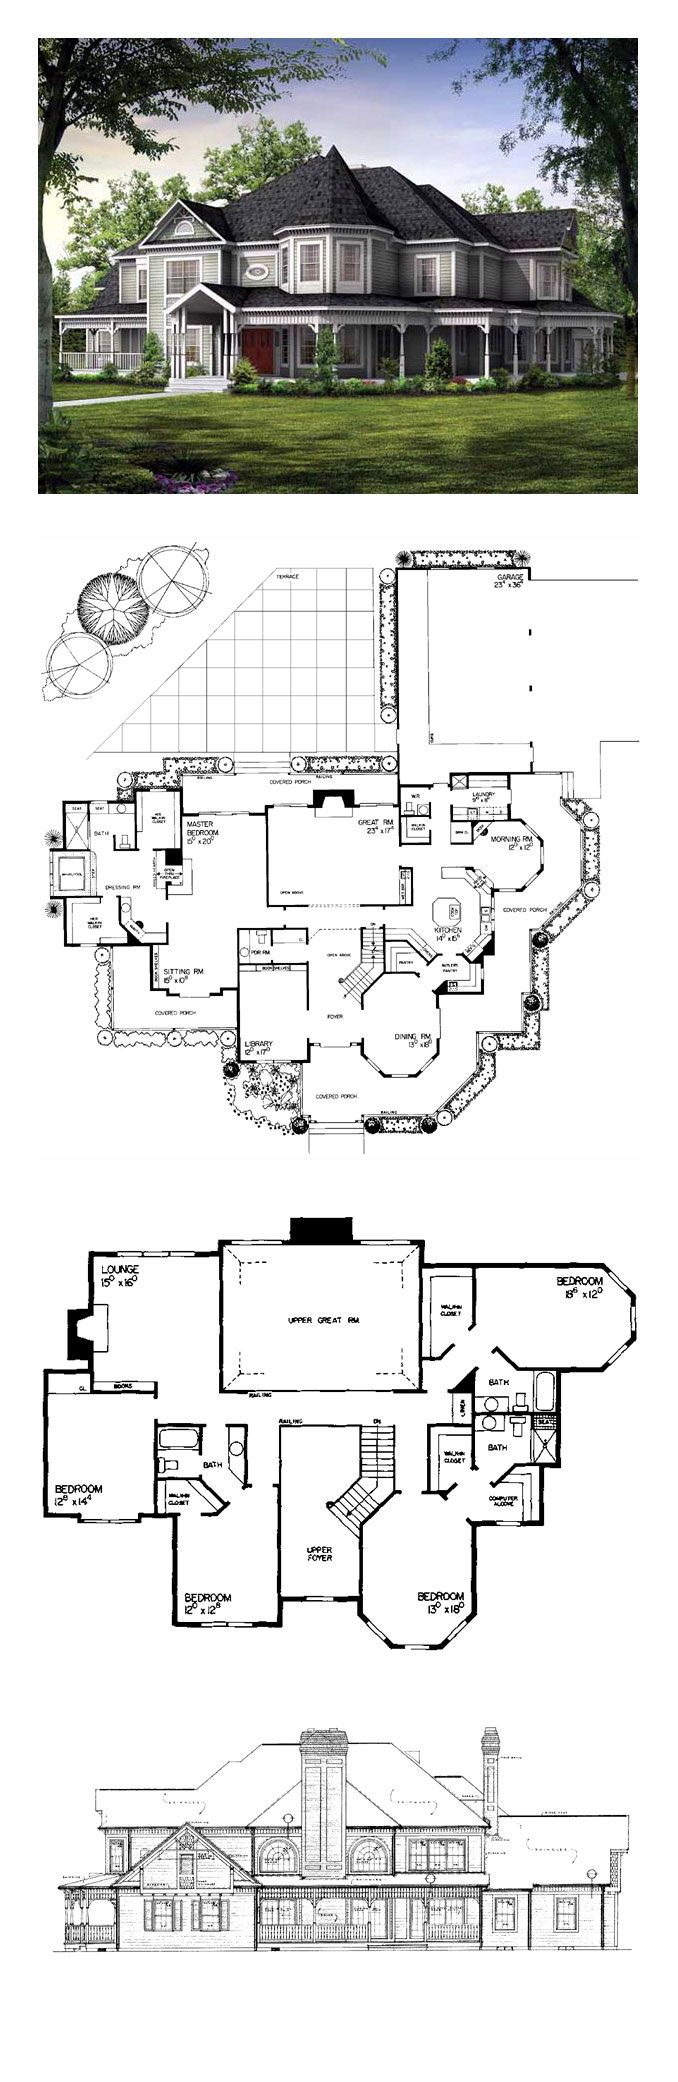 25 best cool house plans ideas on pinterest house layout plans cool house plans offers a unique variety of professionally designed home plans with floor plans by accredited home designers styles include country house